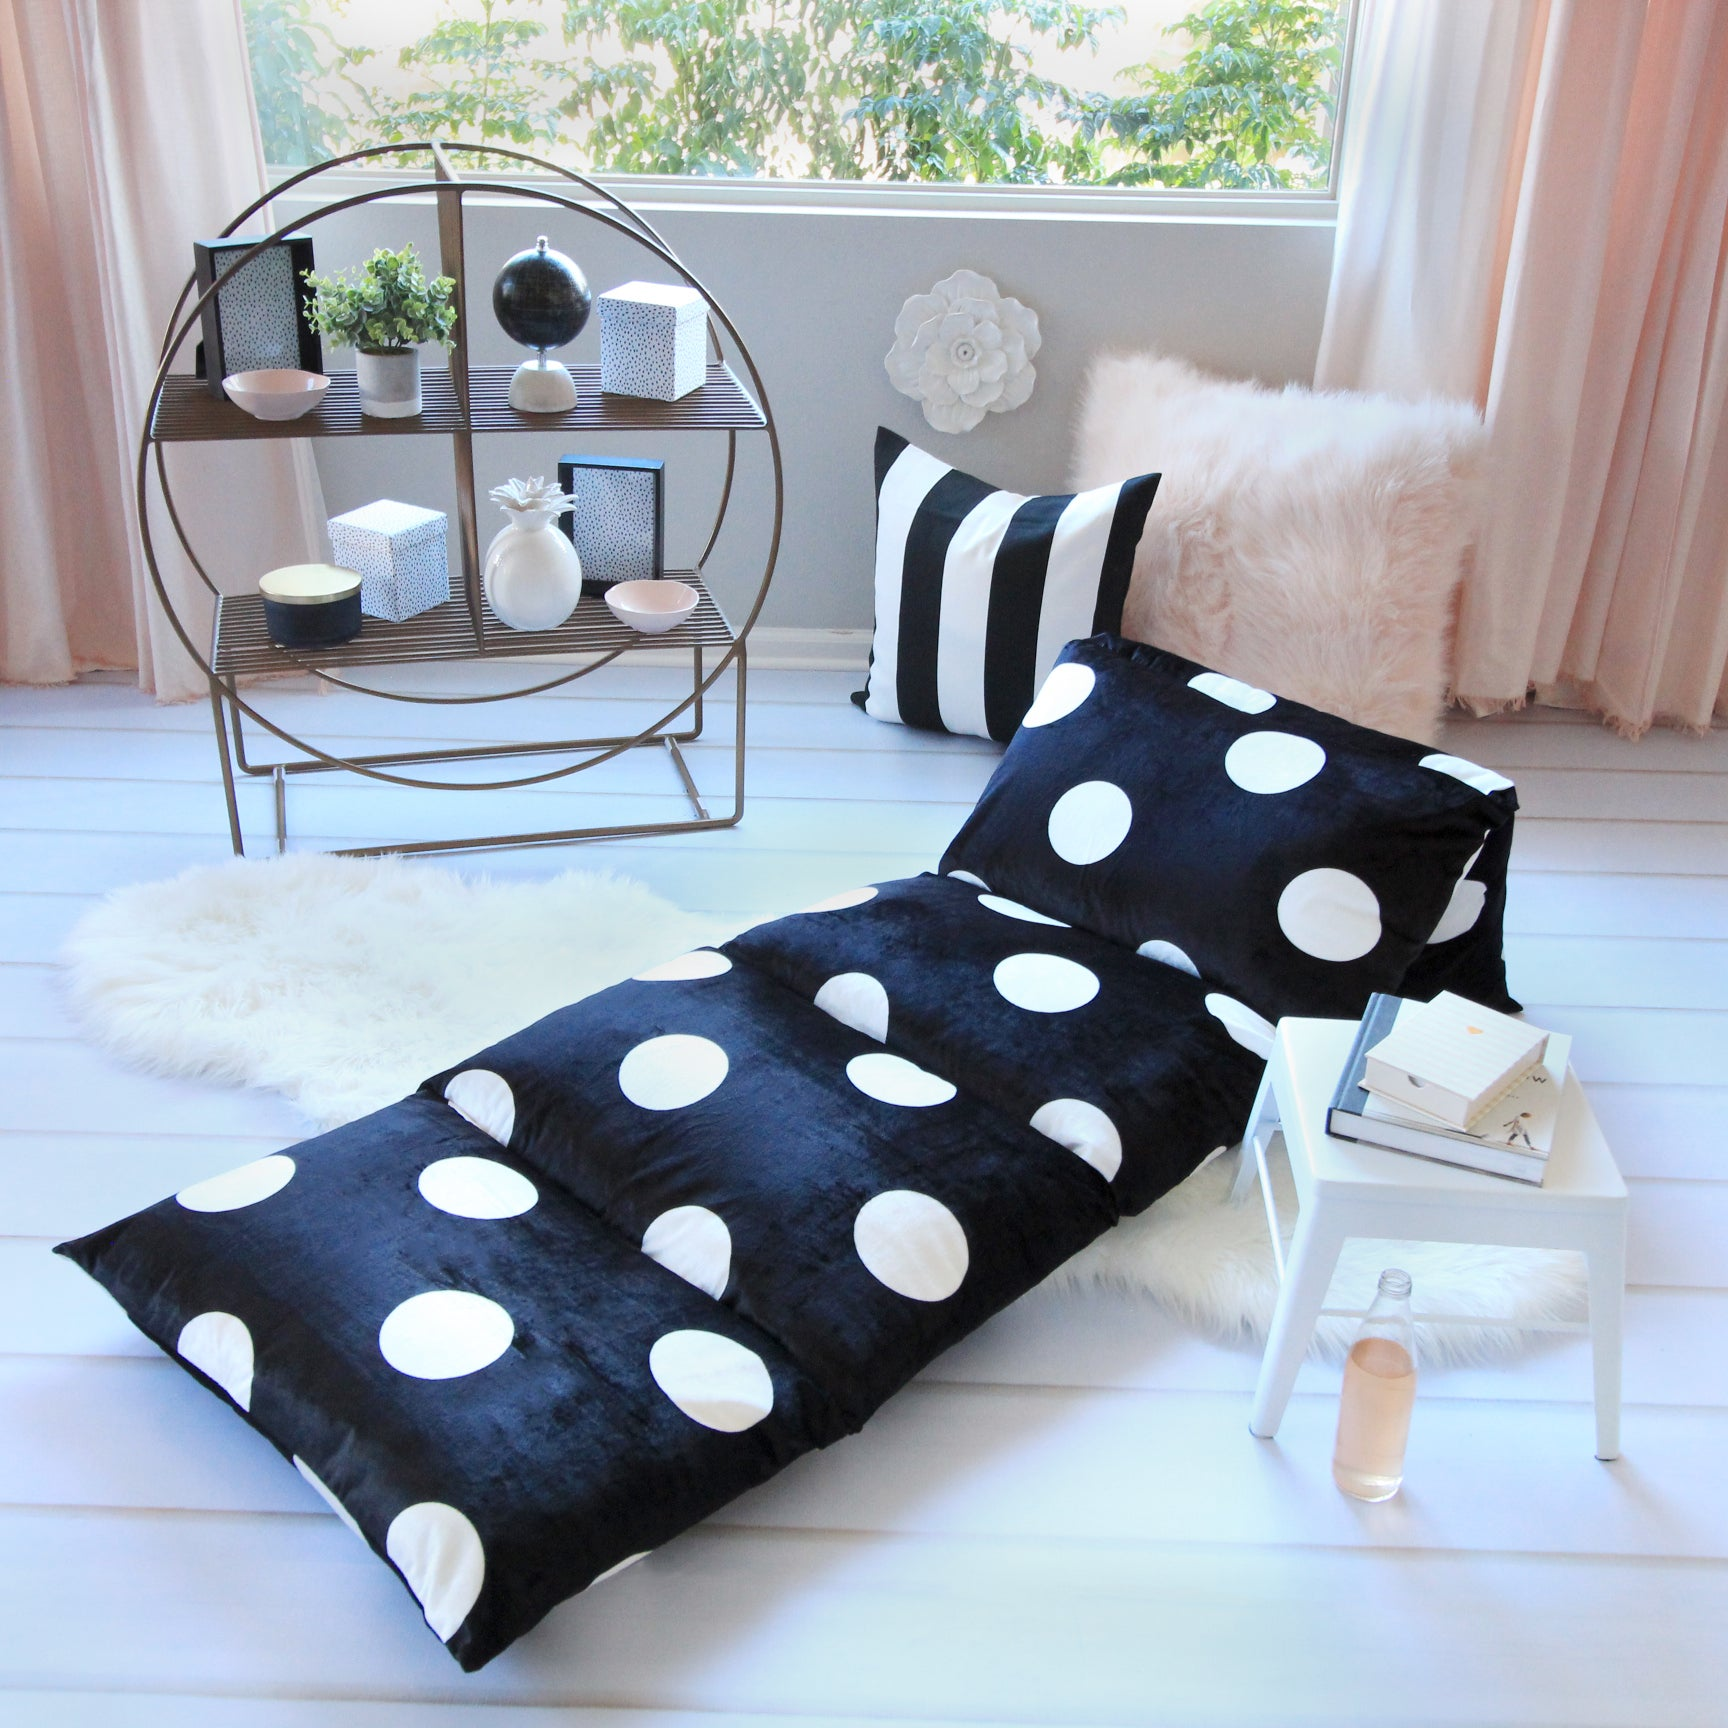 Black Polka Dot Pillow Bed Cover